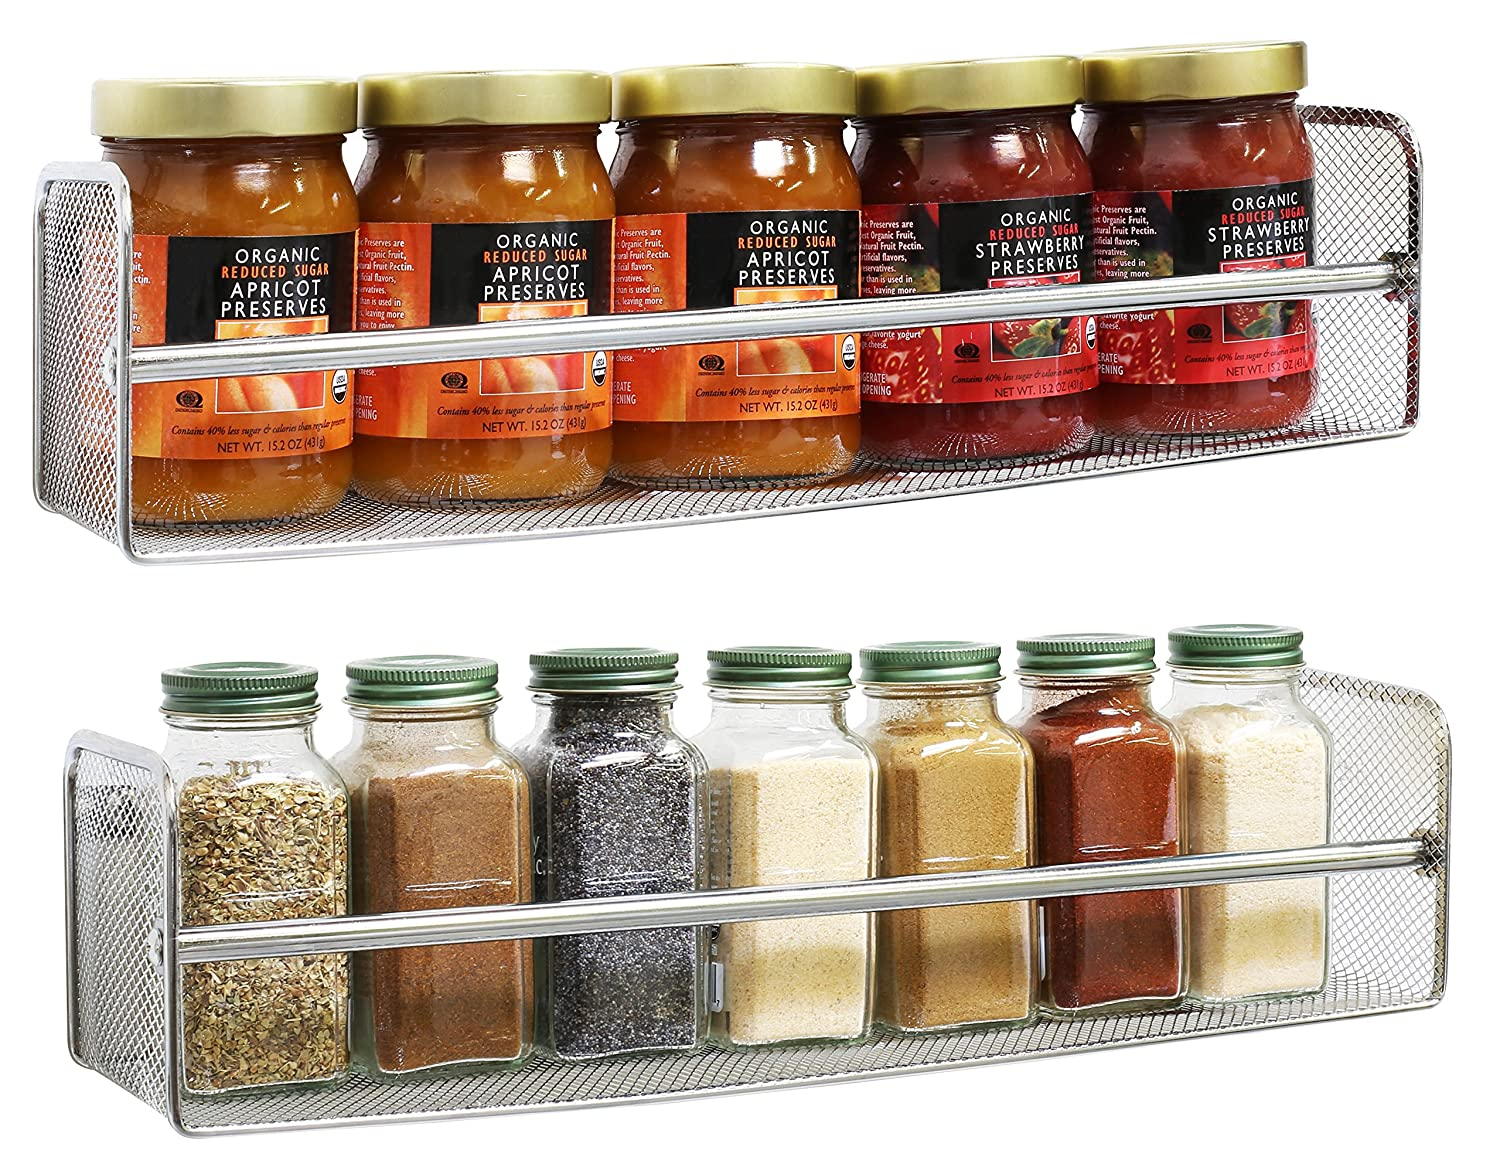 DecoBros 2 Pack Wall Mount Single Tier Mesh Spice Rack, Chrome Deco Brothers RK-030-1